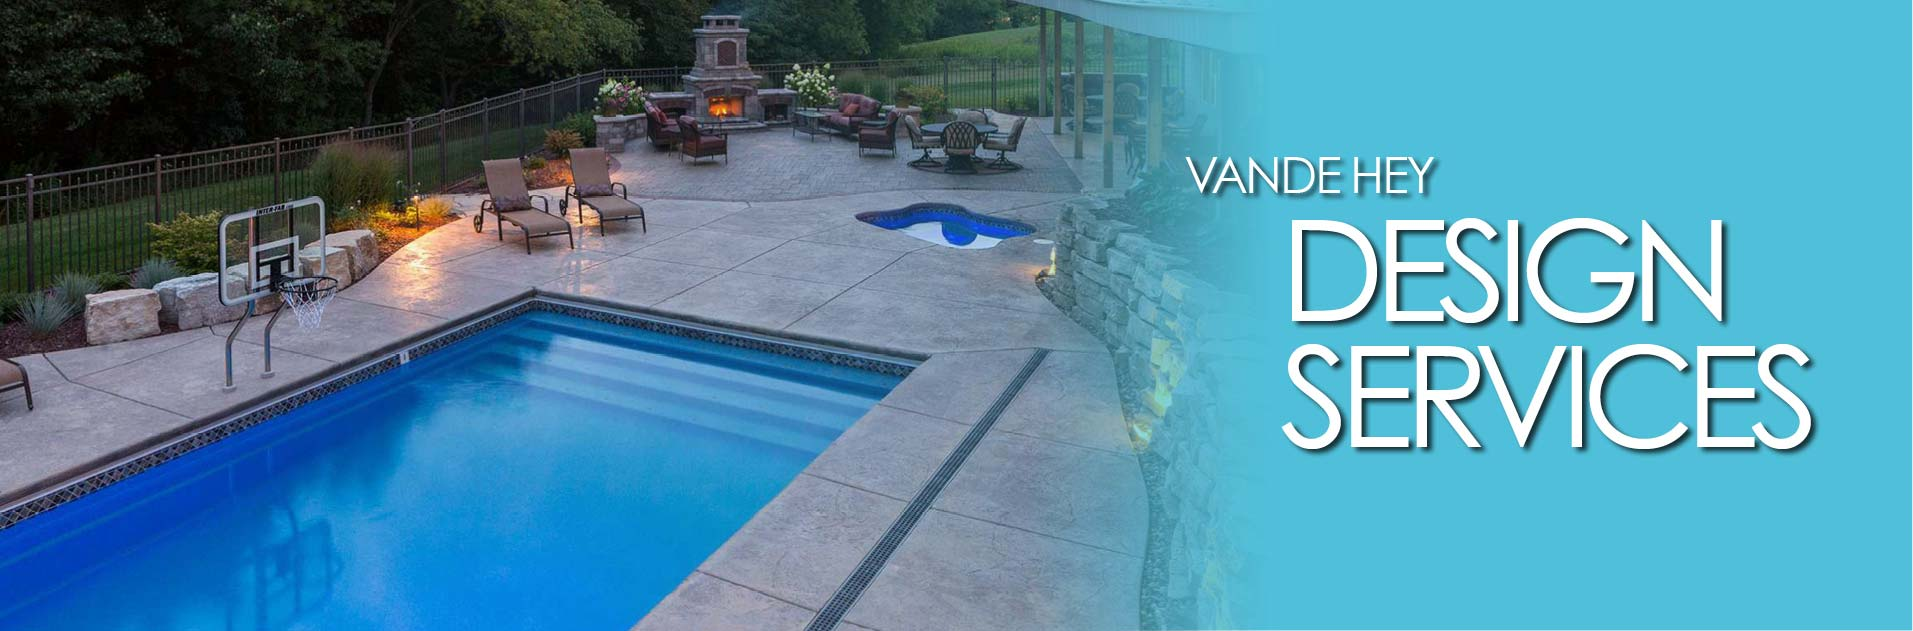 Landscaping Design and Services from Vande Hey in Appleton, WI